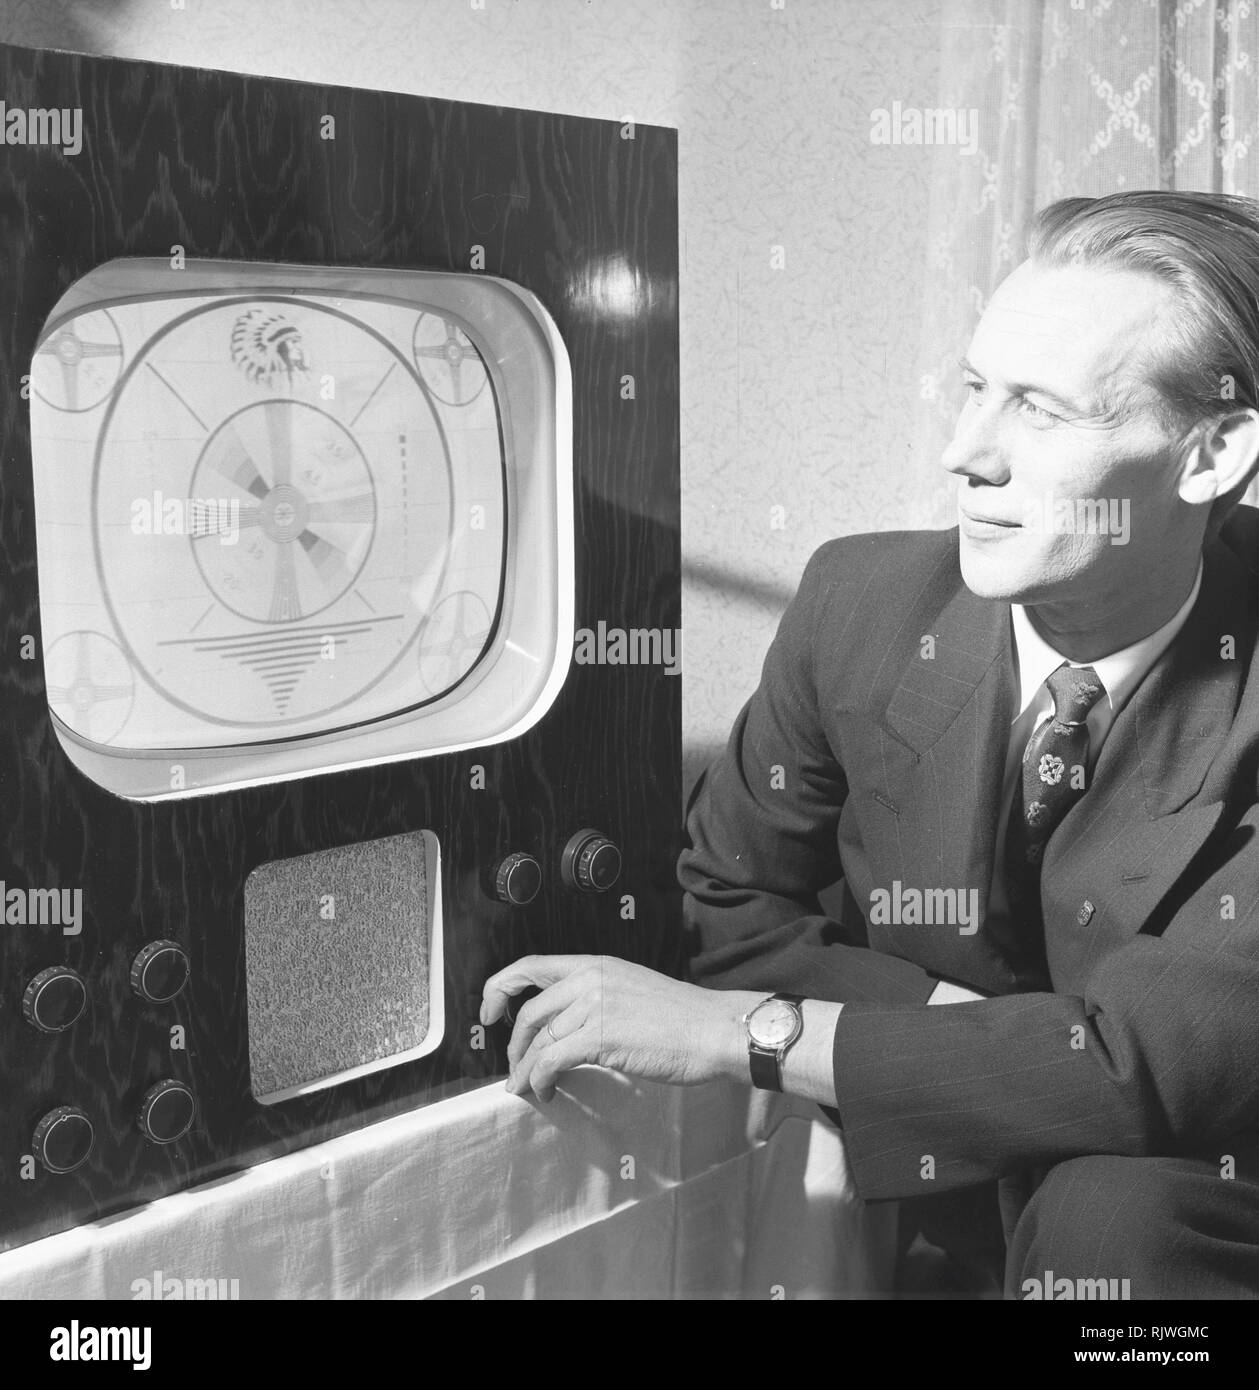 Television in the 1950s. A man with an early television set adjusting the picture. November 1953 - Stock Image